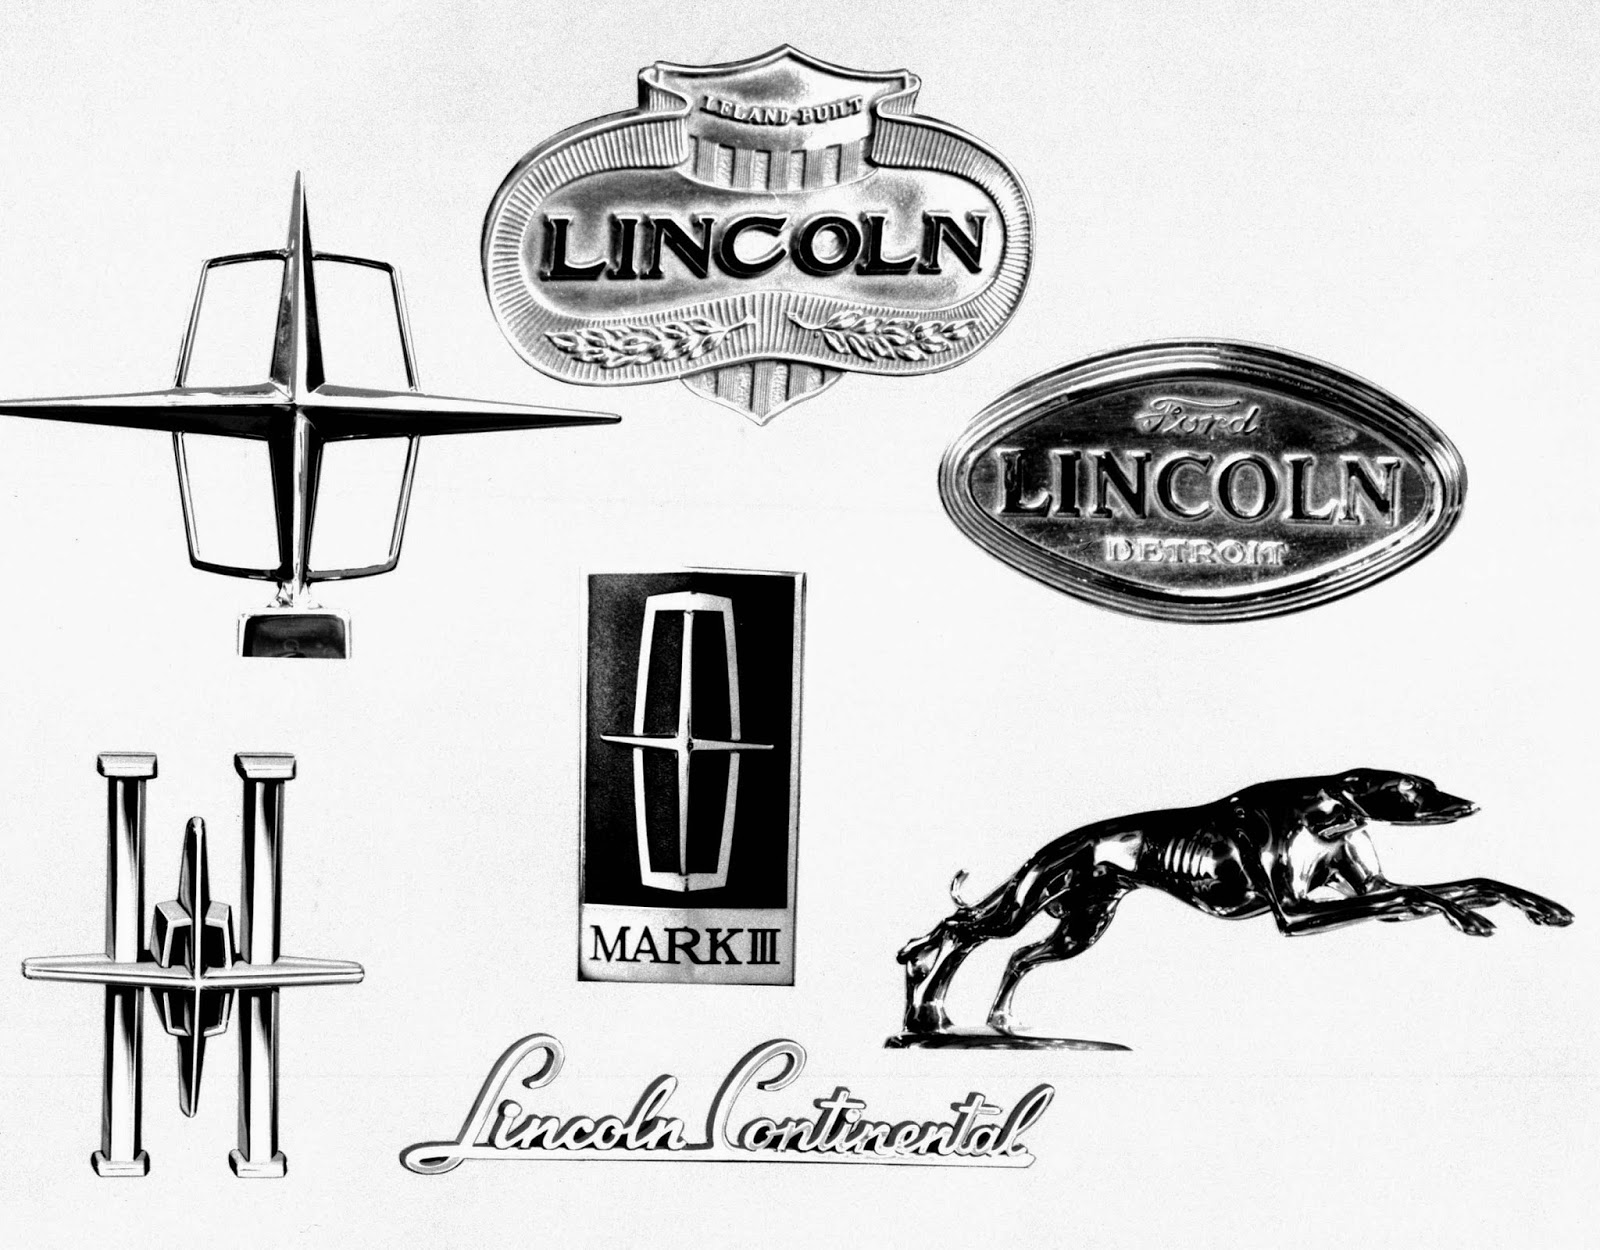 Matt's Lincoln Blog: Lincoln emblems over the years